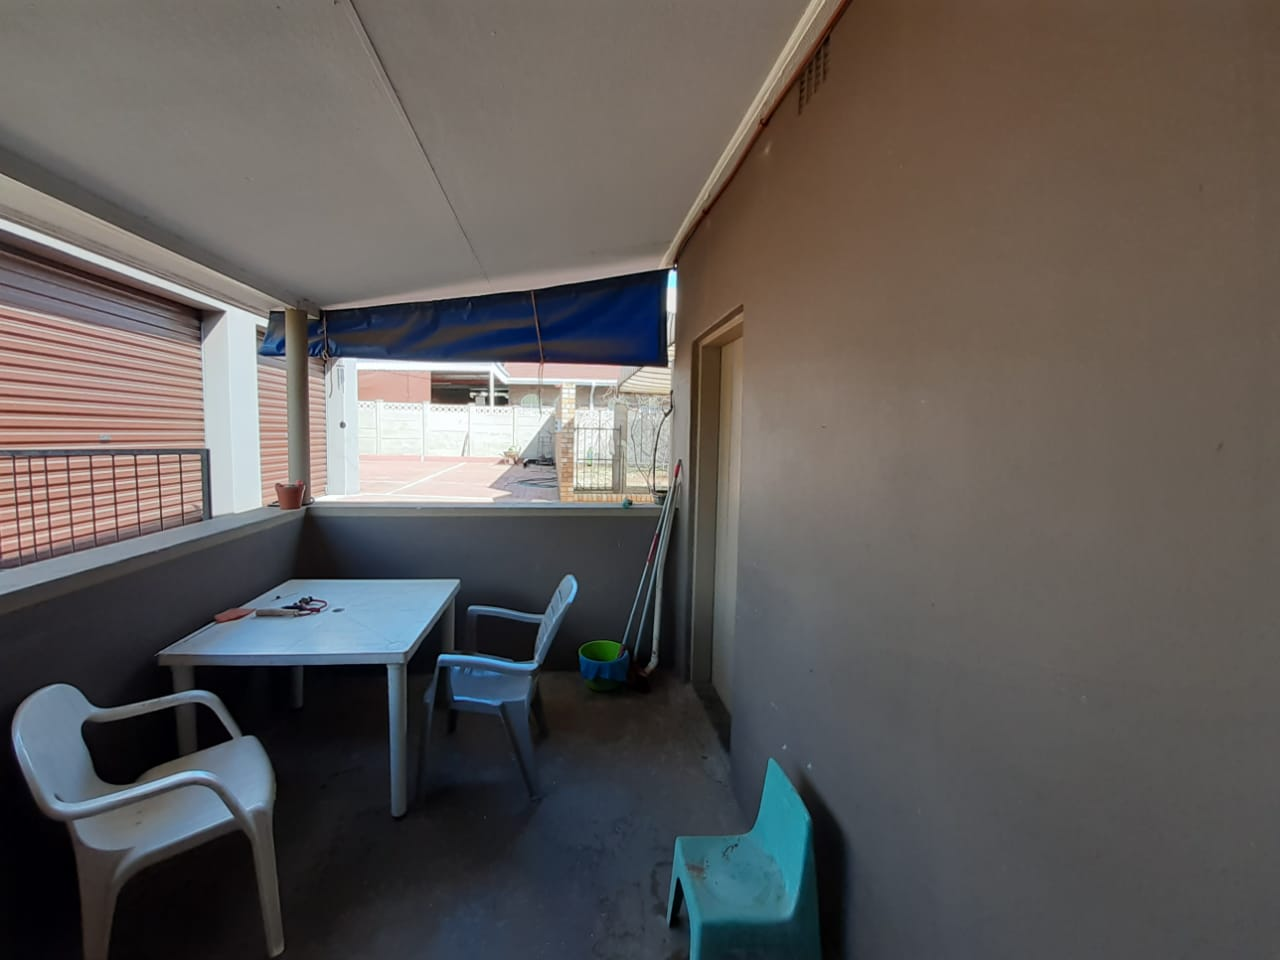 House in Parys - WhatsApp Image 2021-07-15 at 14.03.55.jpeg